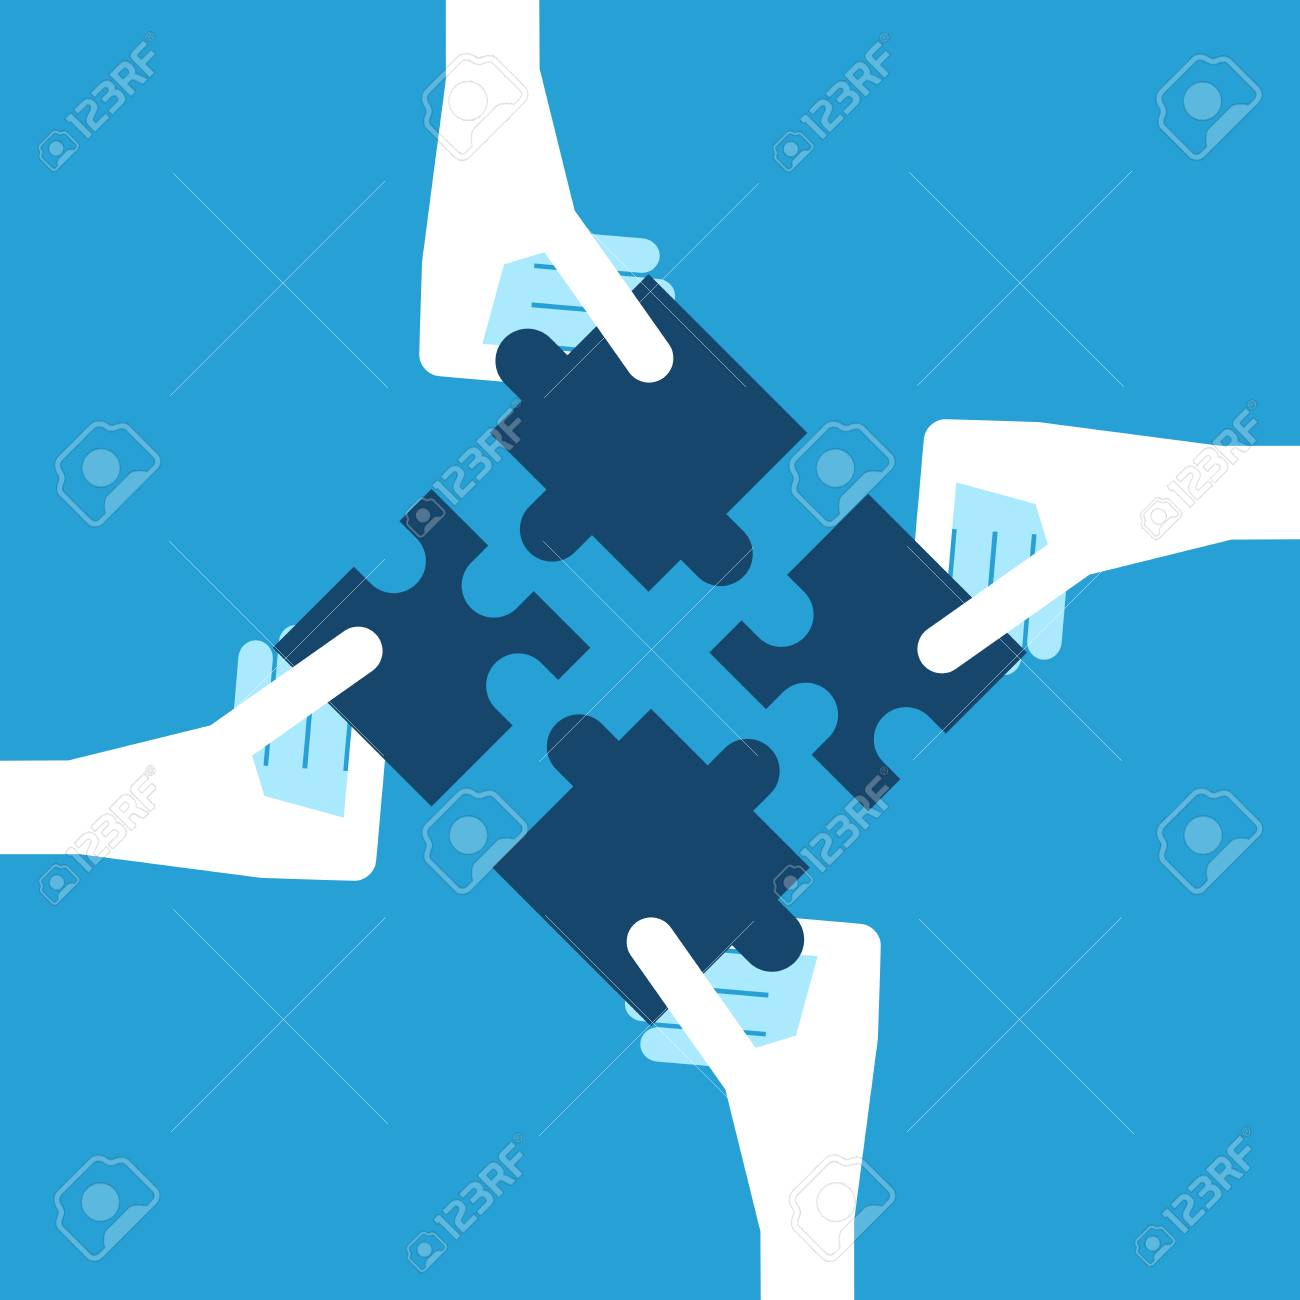 Four white hands holding blue puzzle pieces. Teamwork, partnership and solution concept. Flat design. EPS 8 vector illustration, no transparency - 70792067